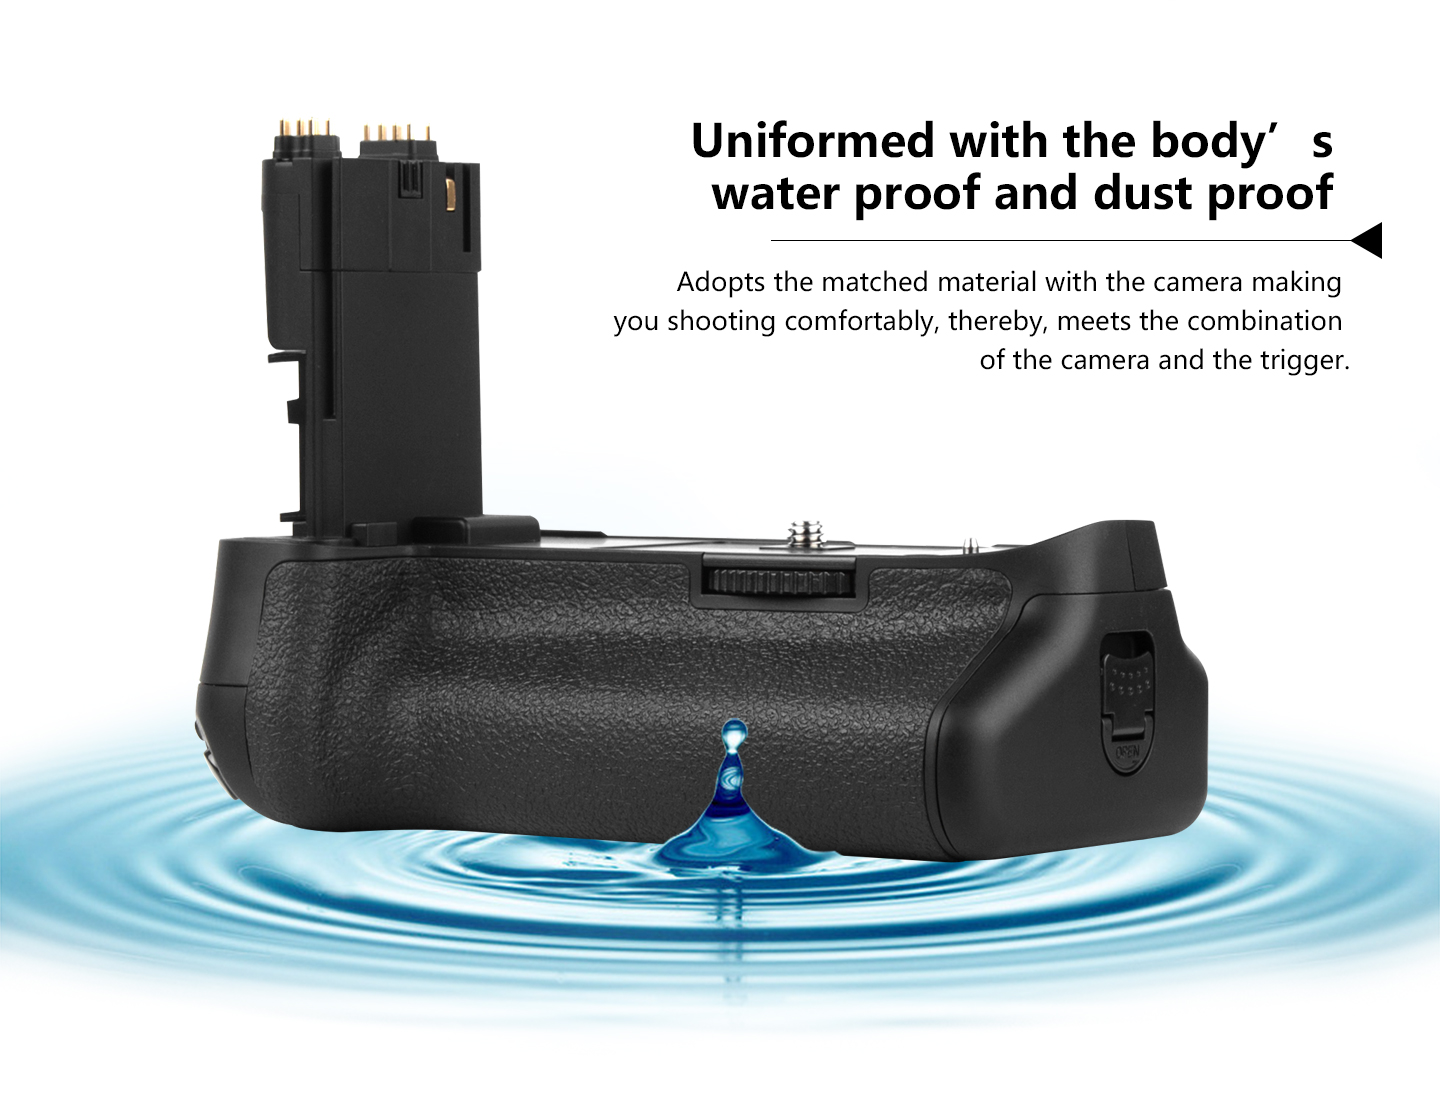 Uniformed with the body's water proof and dust proof